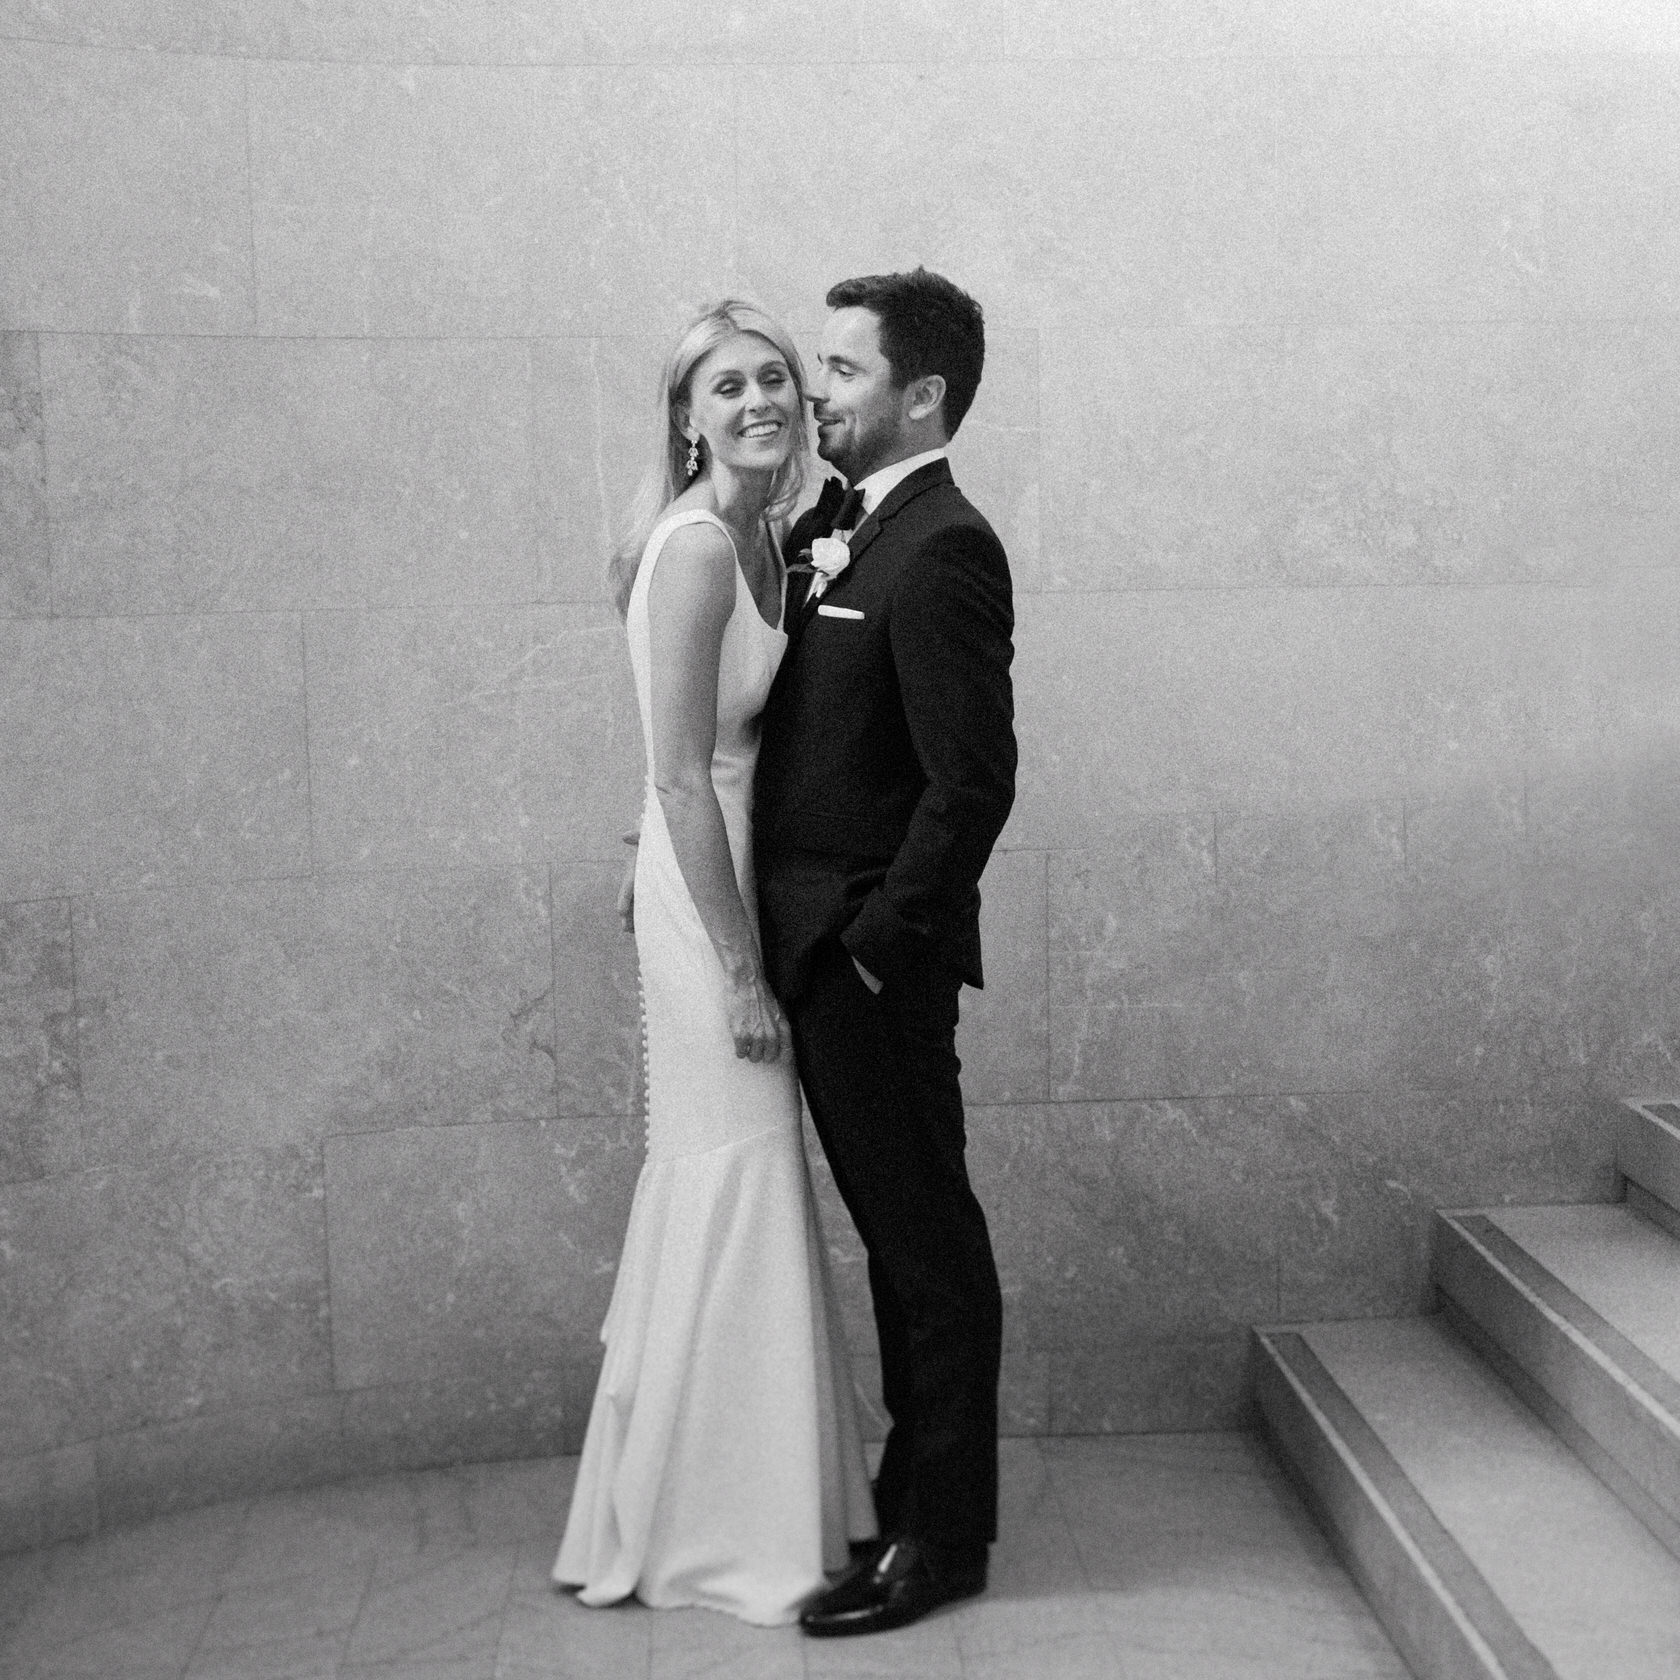 Montreal destination wedding classic black and white bride and groom wedding photos.jpg